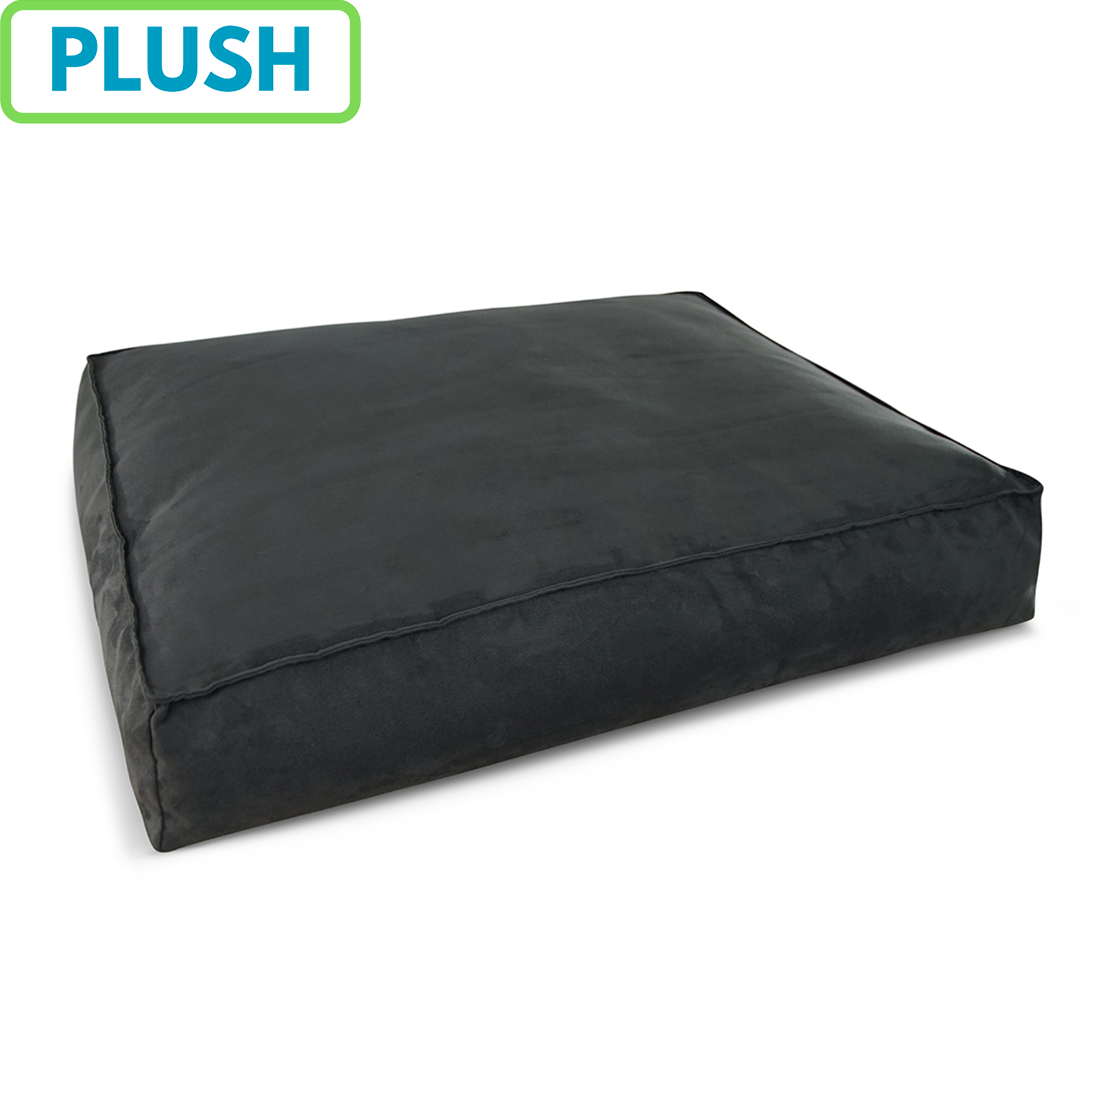 Elation Plush Pillow Dog Bed